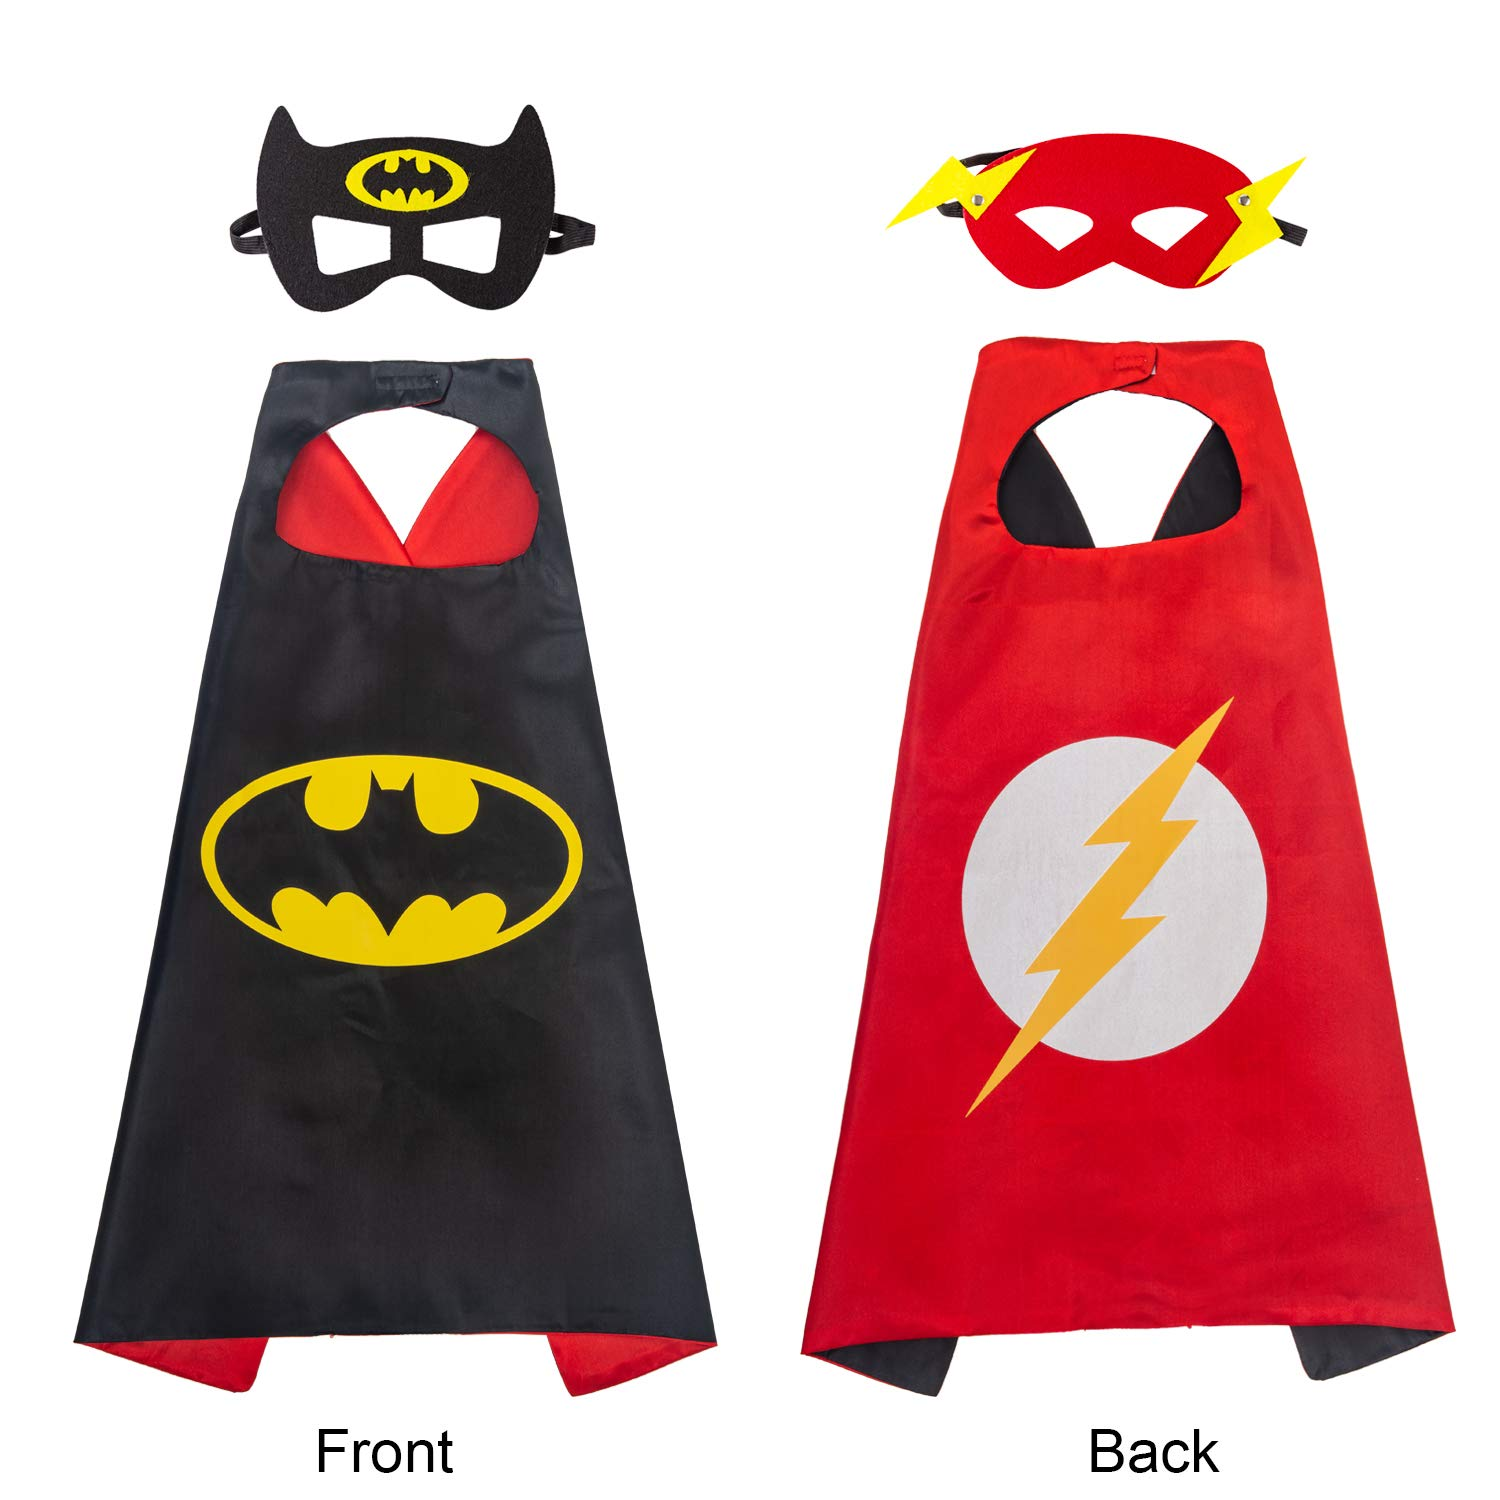 YOHEER Superhero Dress Up Costume Set, Double-Sided Satin Capes with Felt Masks for Kids, One Set Plays Double Roles.